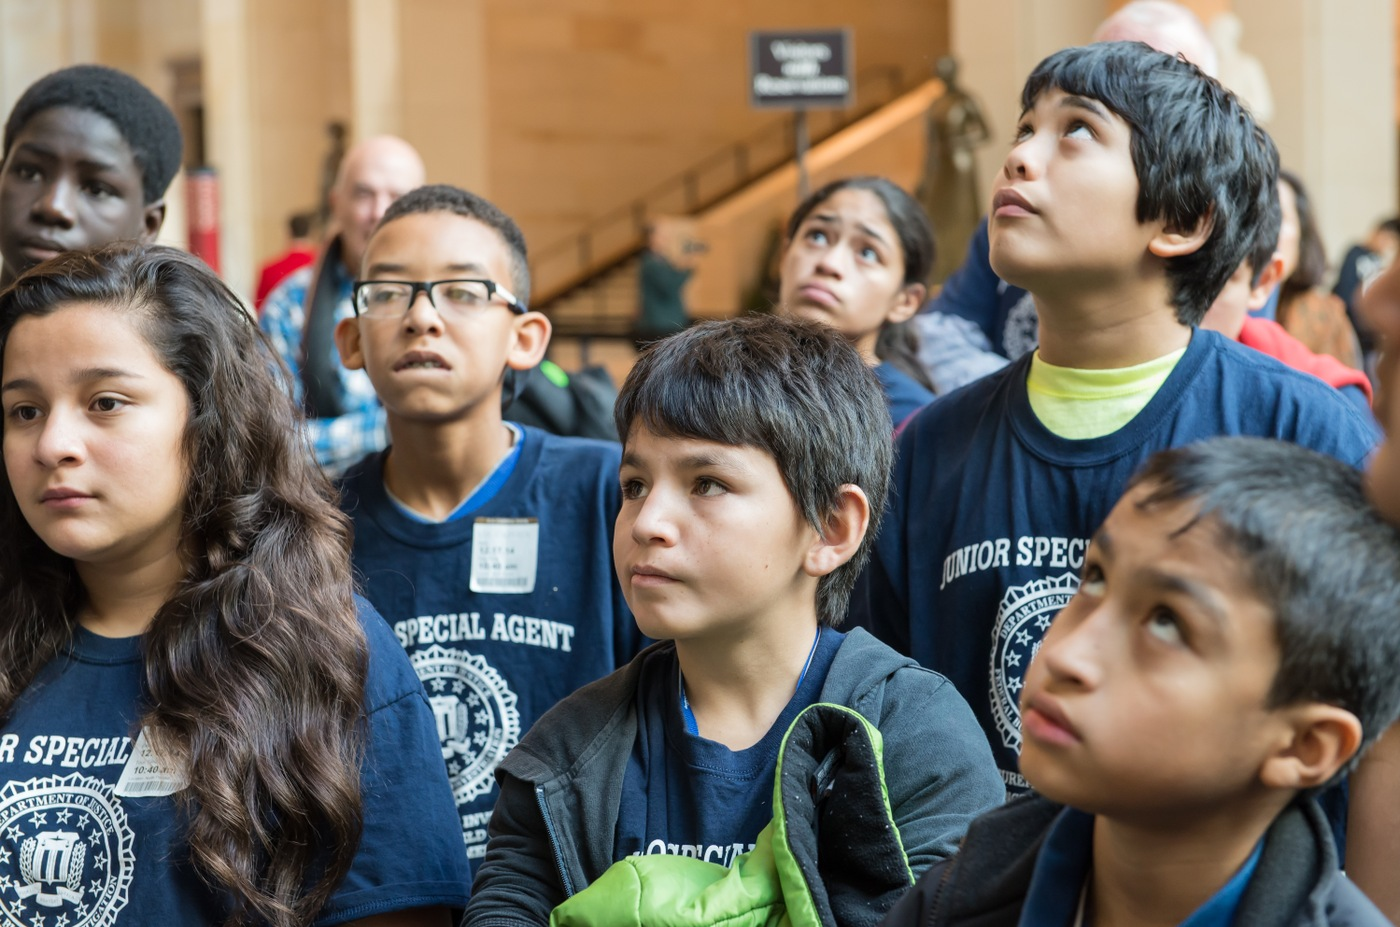 Field trips students participate in through the Junior Special Agent Program are meant to be fun—and educational. The emphasis is always on learning.